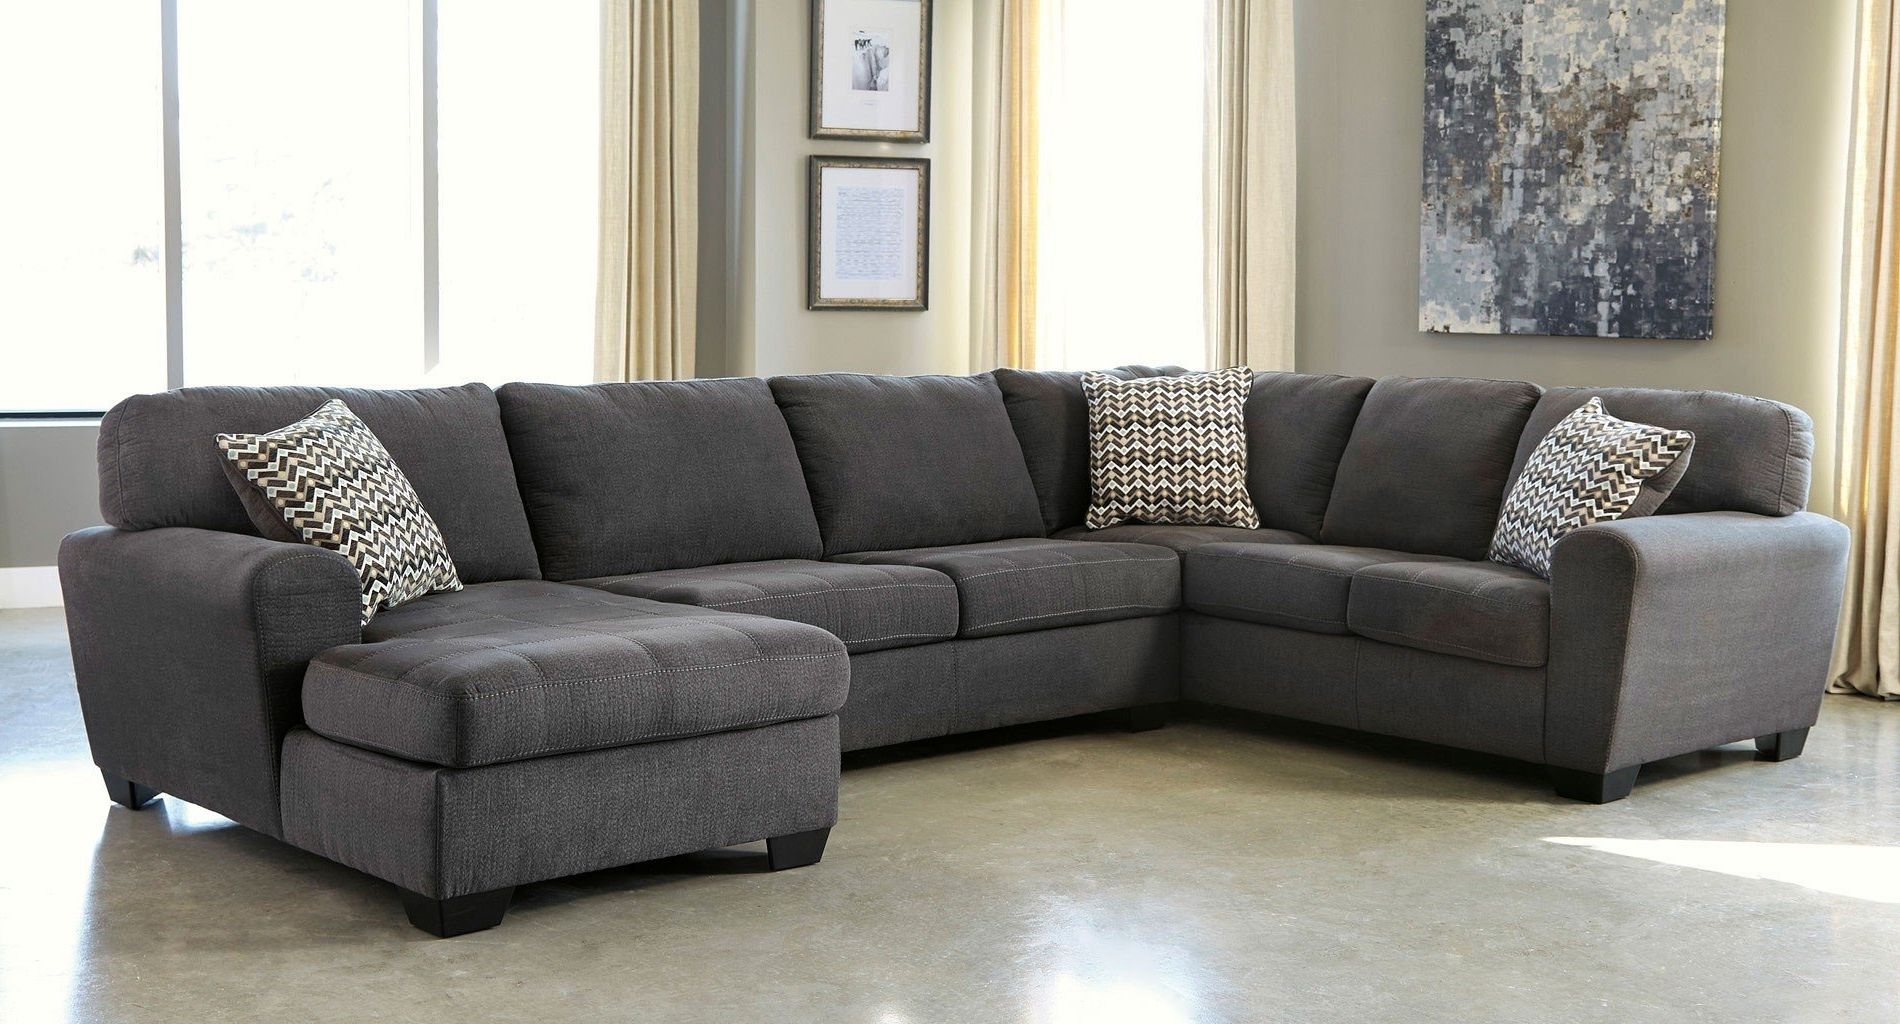 Sorenton Slate Right Facing Chaise Sectional – Sectionals – Living Within Widely Used Right Facing Chaise Sectionals (View 2 of 15)